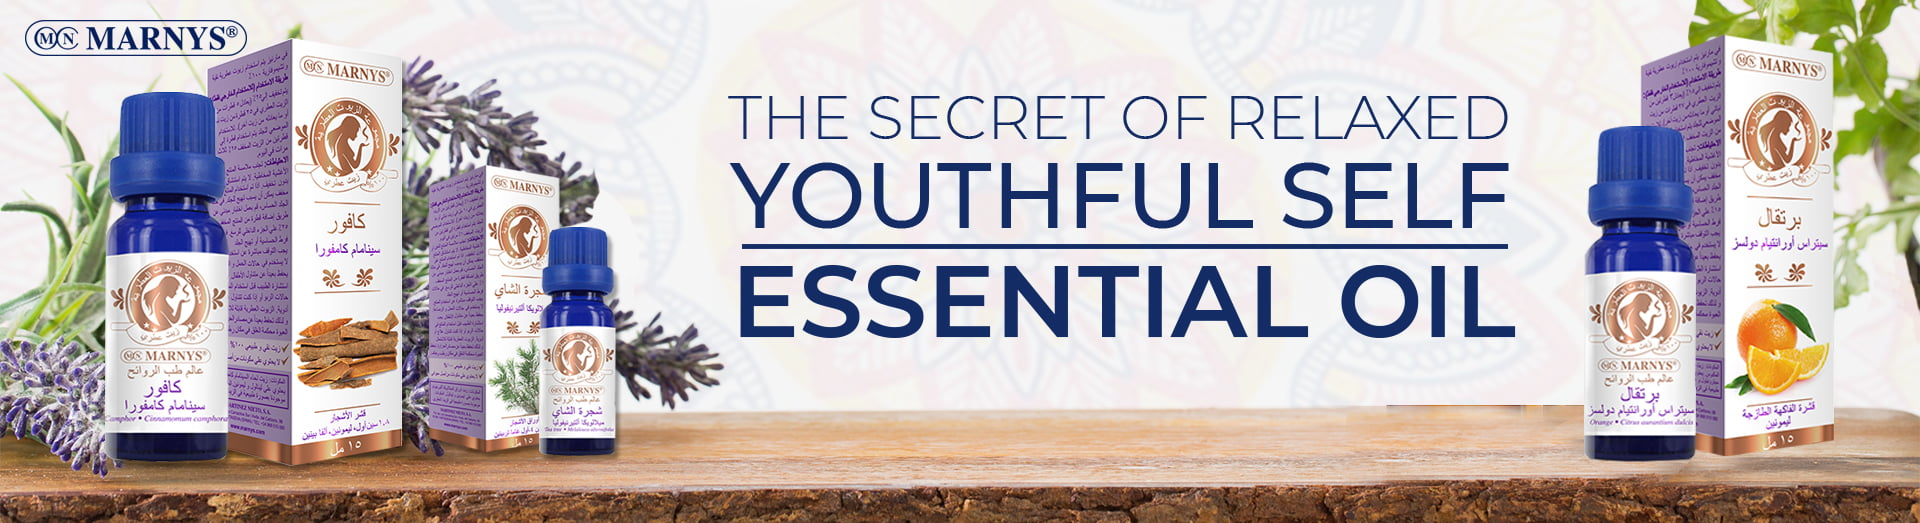 essential oils how to use - Essential Oils – The Secrets behind